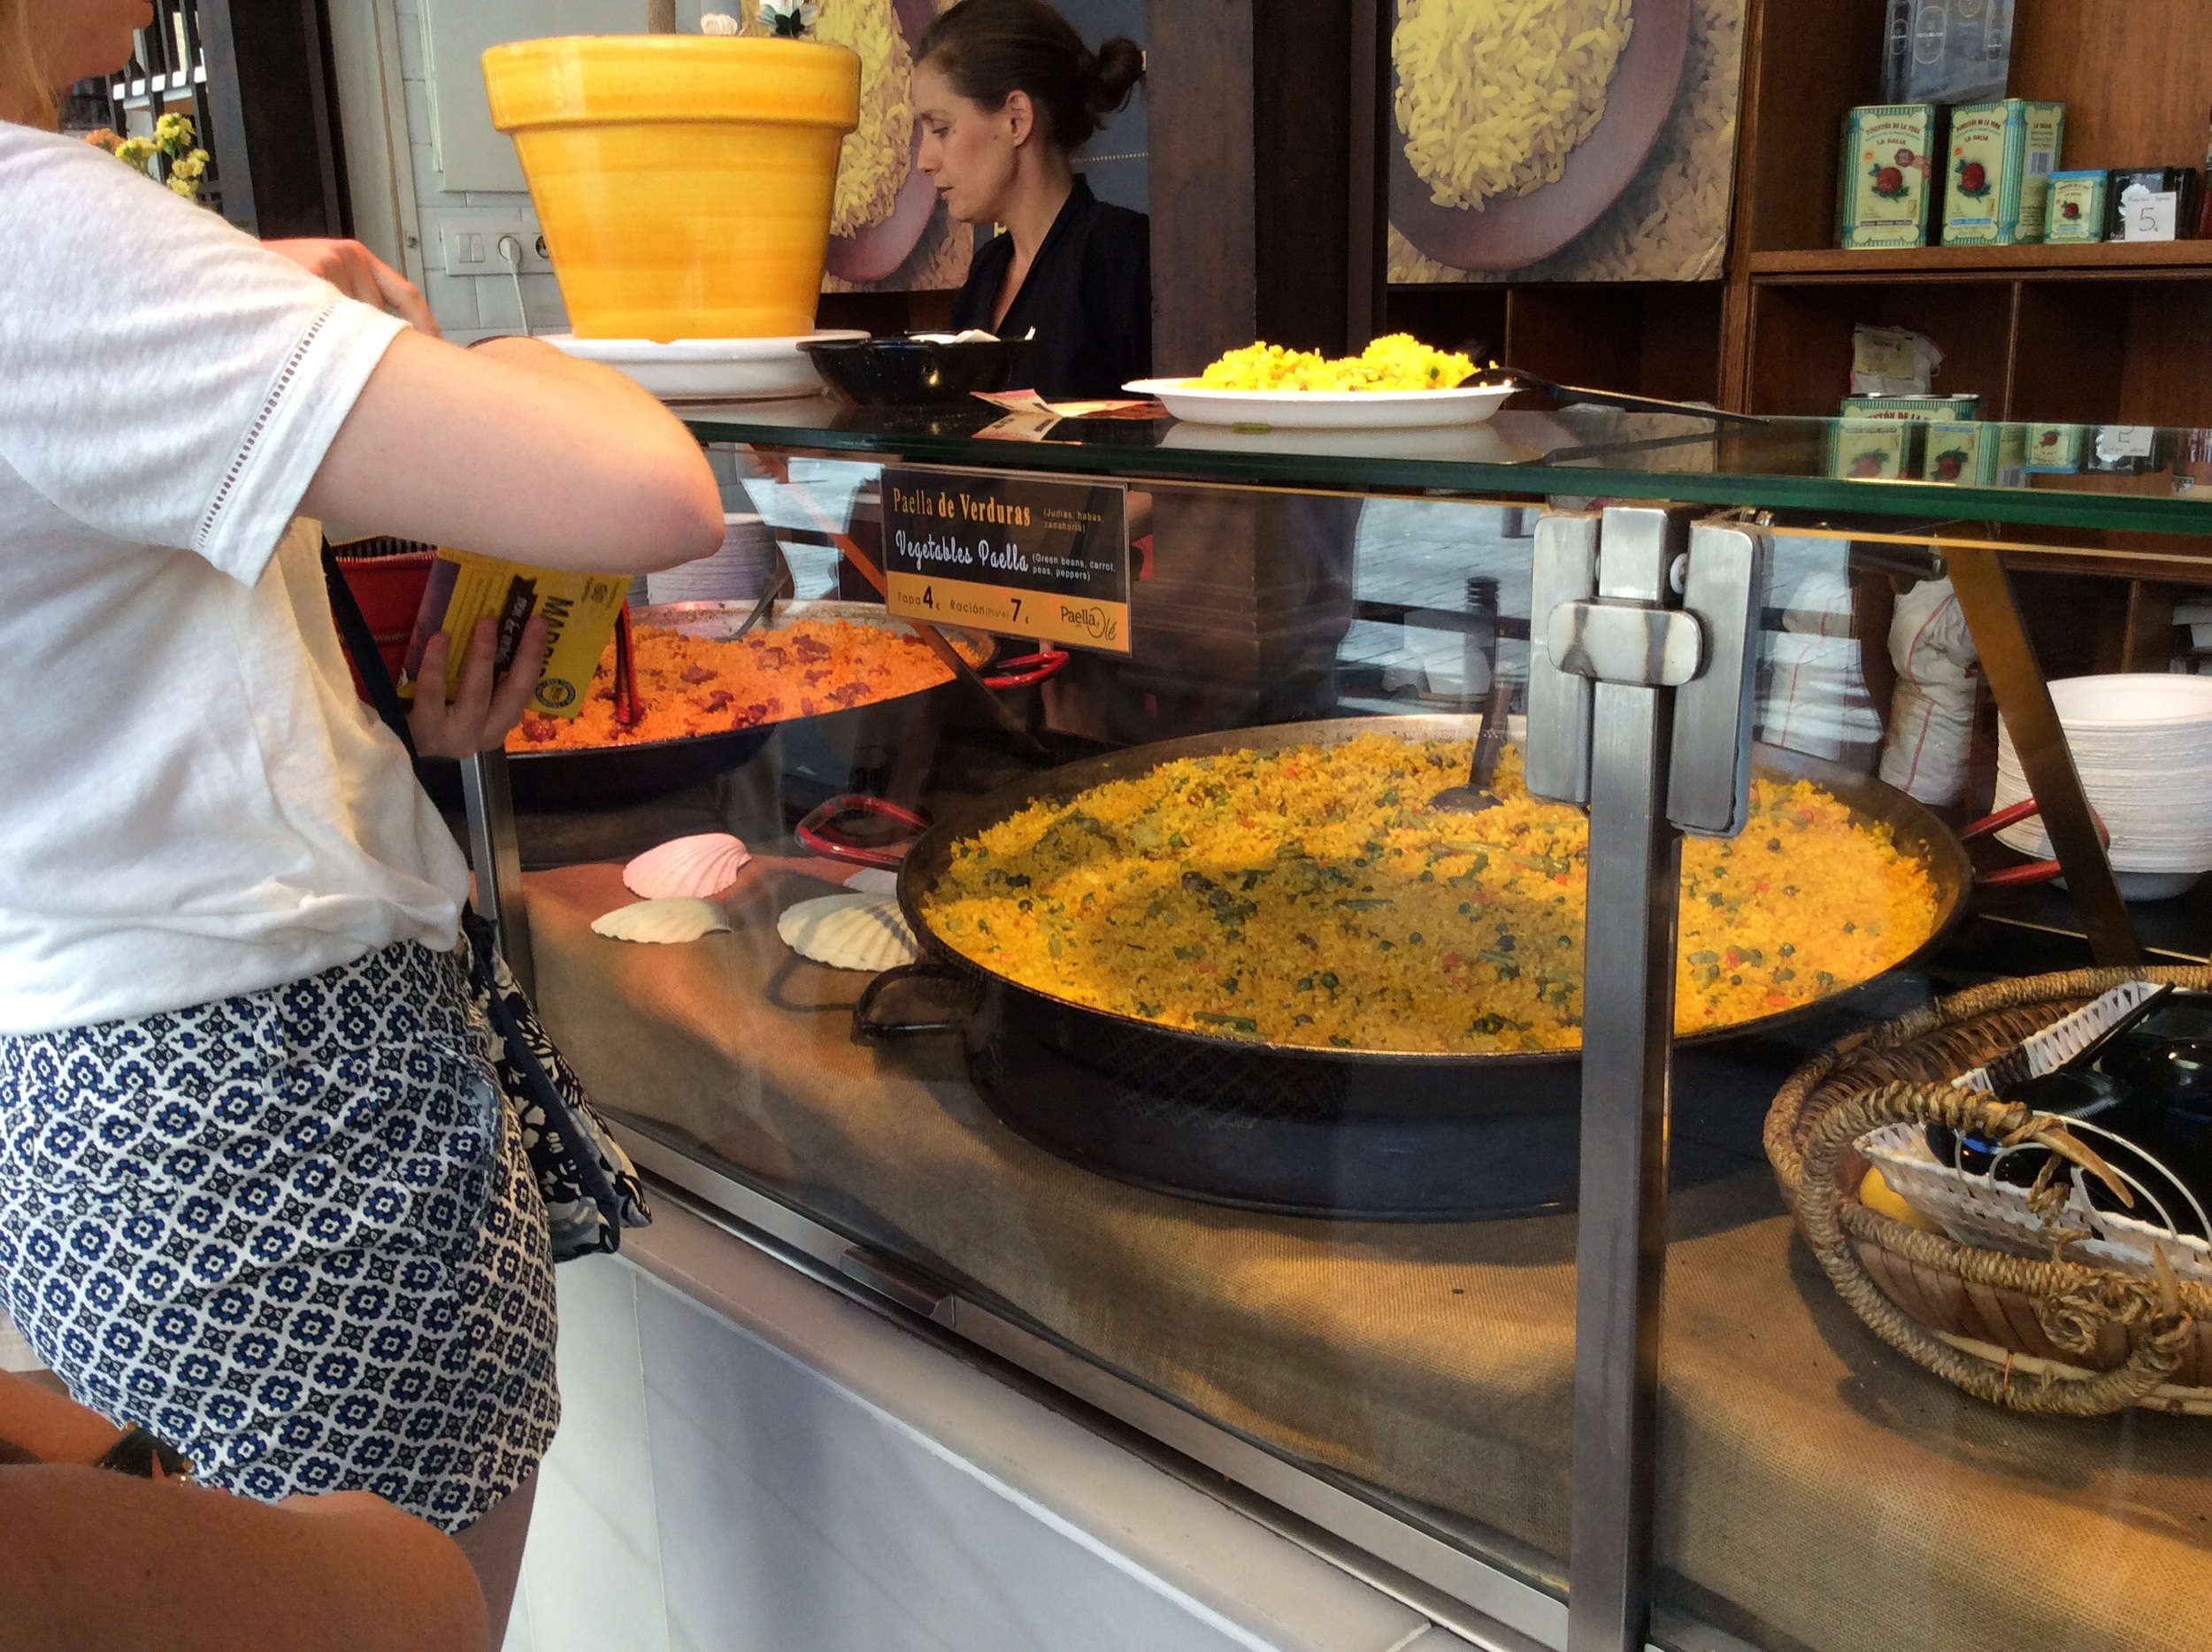 Now that's what I call paella!